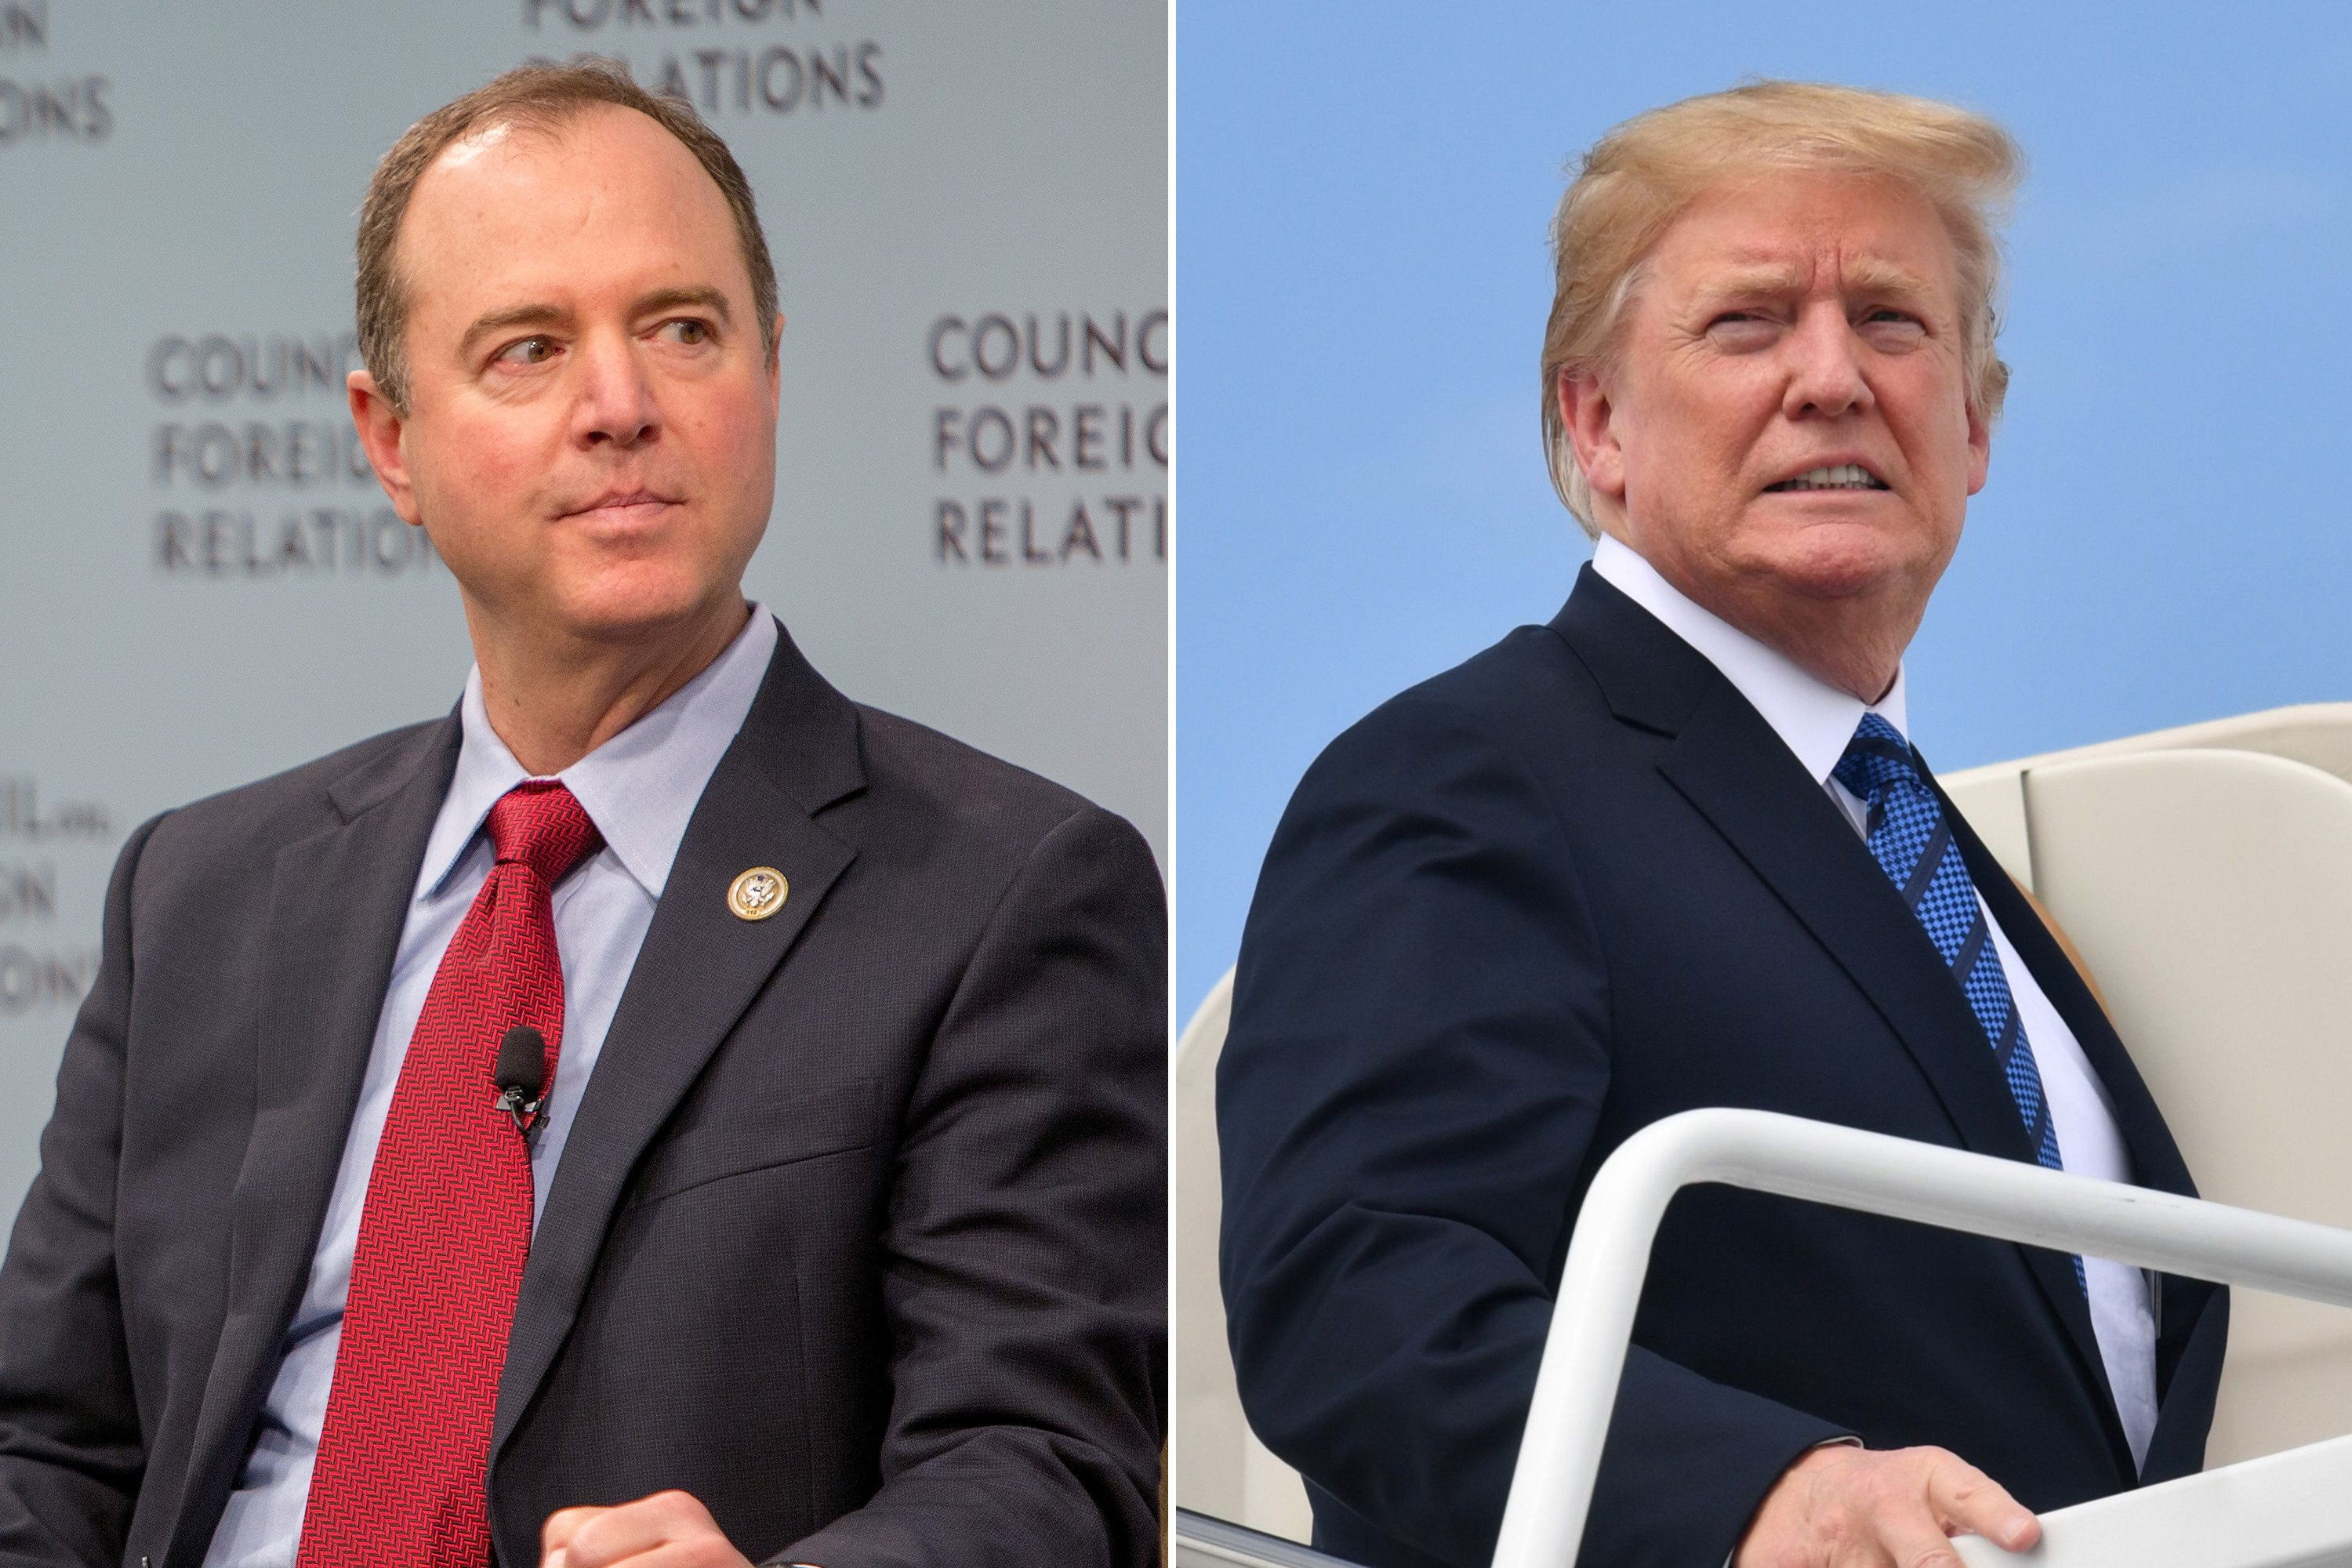 Schiff: Trump acts like someone 'compromised' by Putin